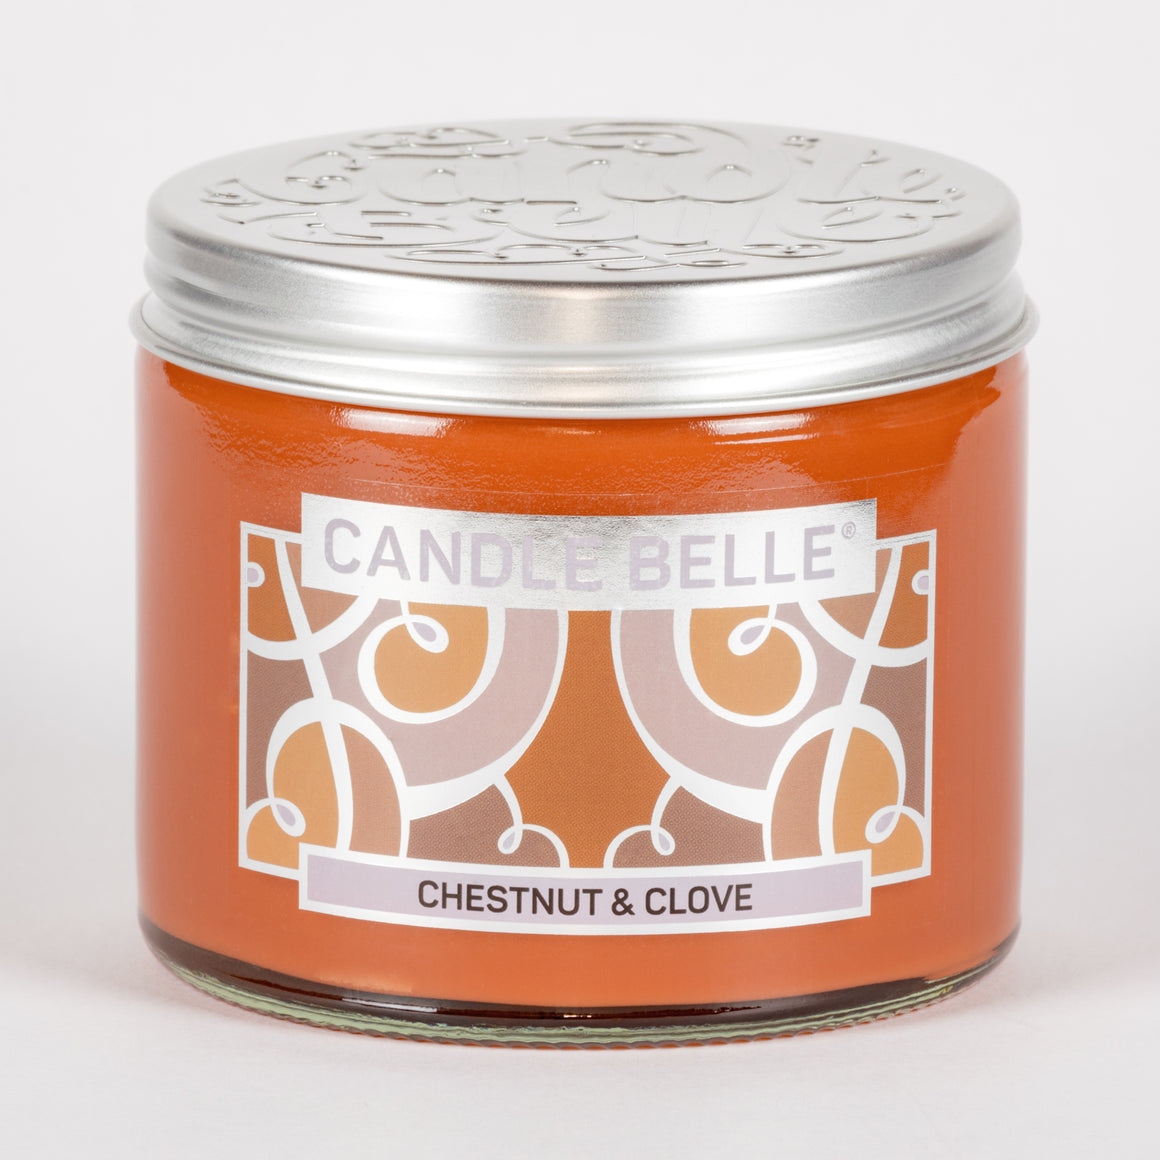 Candle Belle® Chestnut & Clove Fragranced Twin Wick Jar Candle 240g (3 Pack)